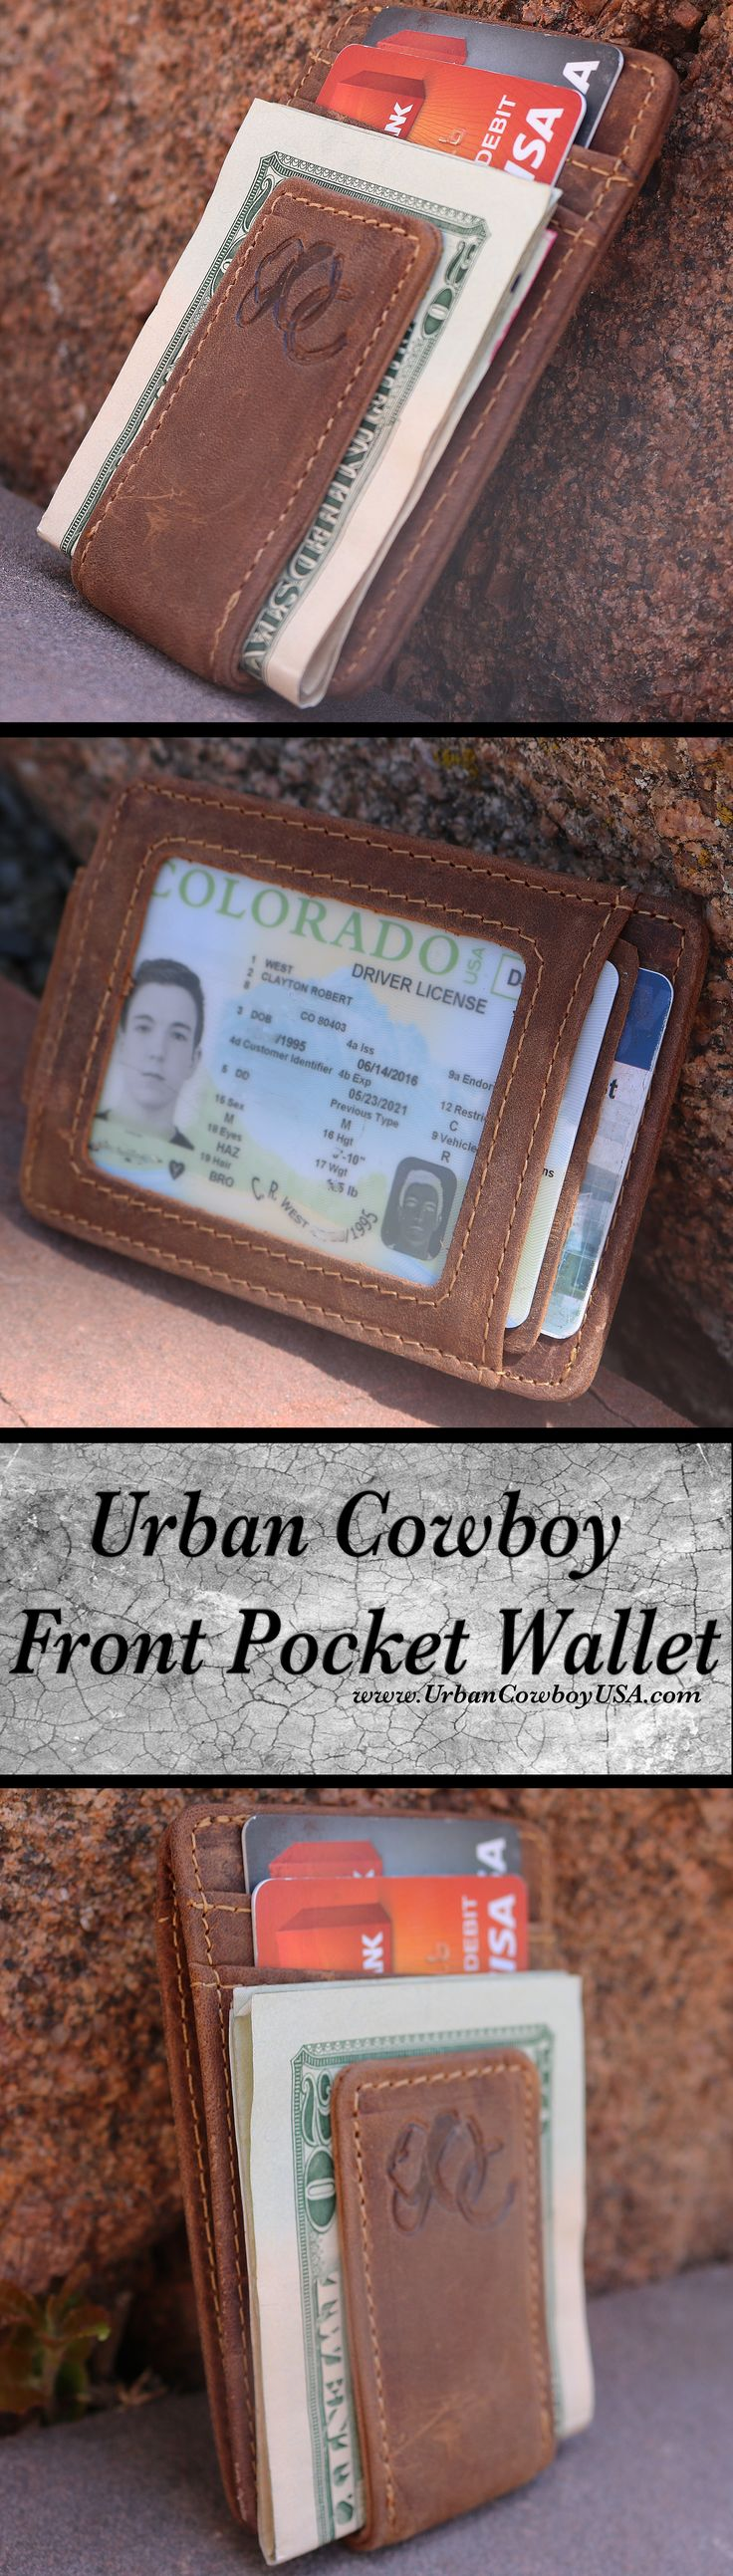 Urban Cowboy Front Pocket Wallet 100% GENIUNE LEATHER - made of the finest distressed cowhide leather